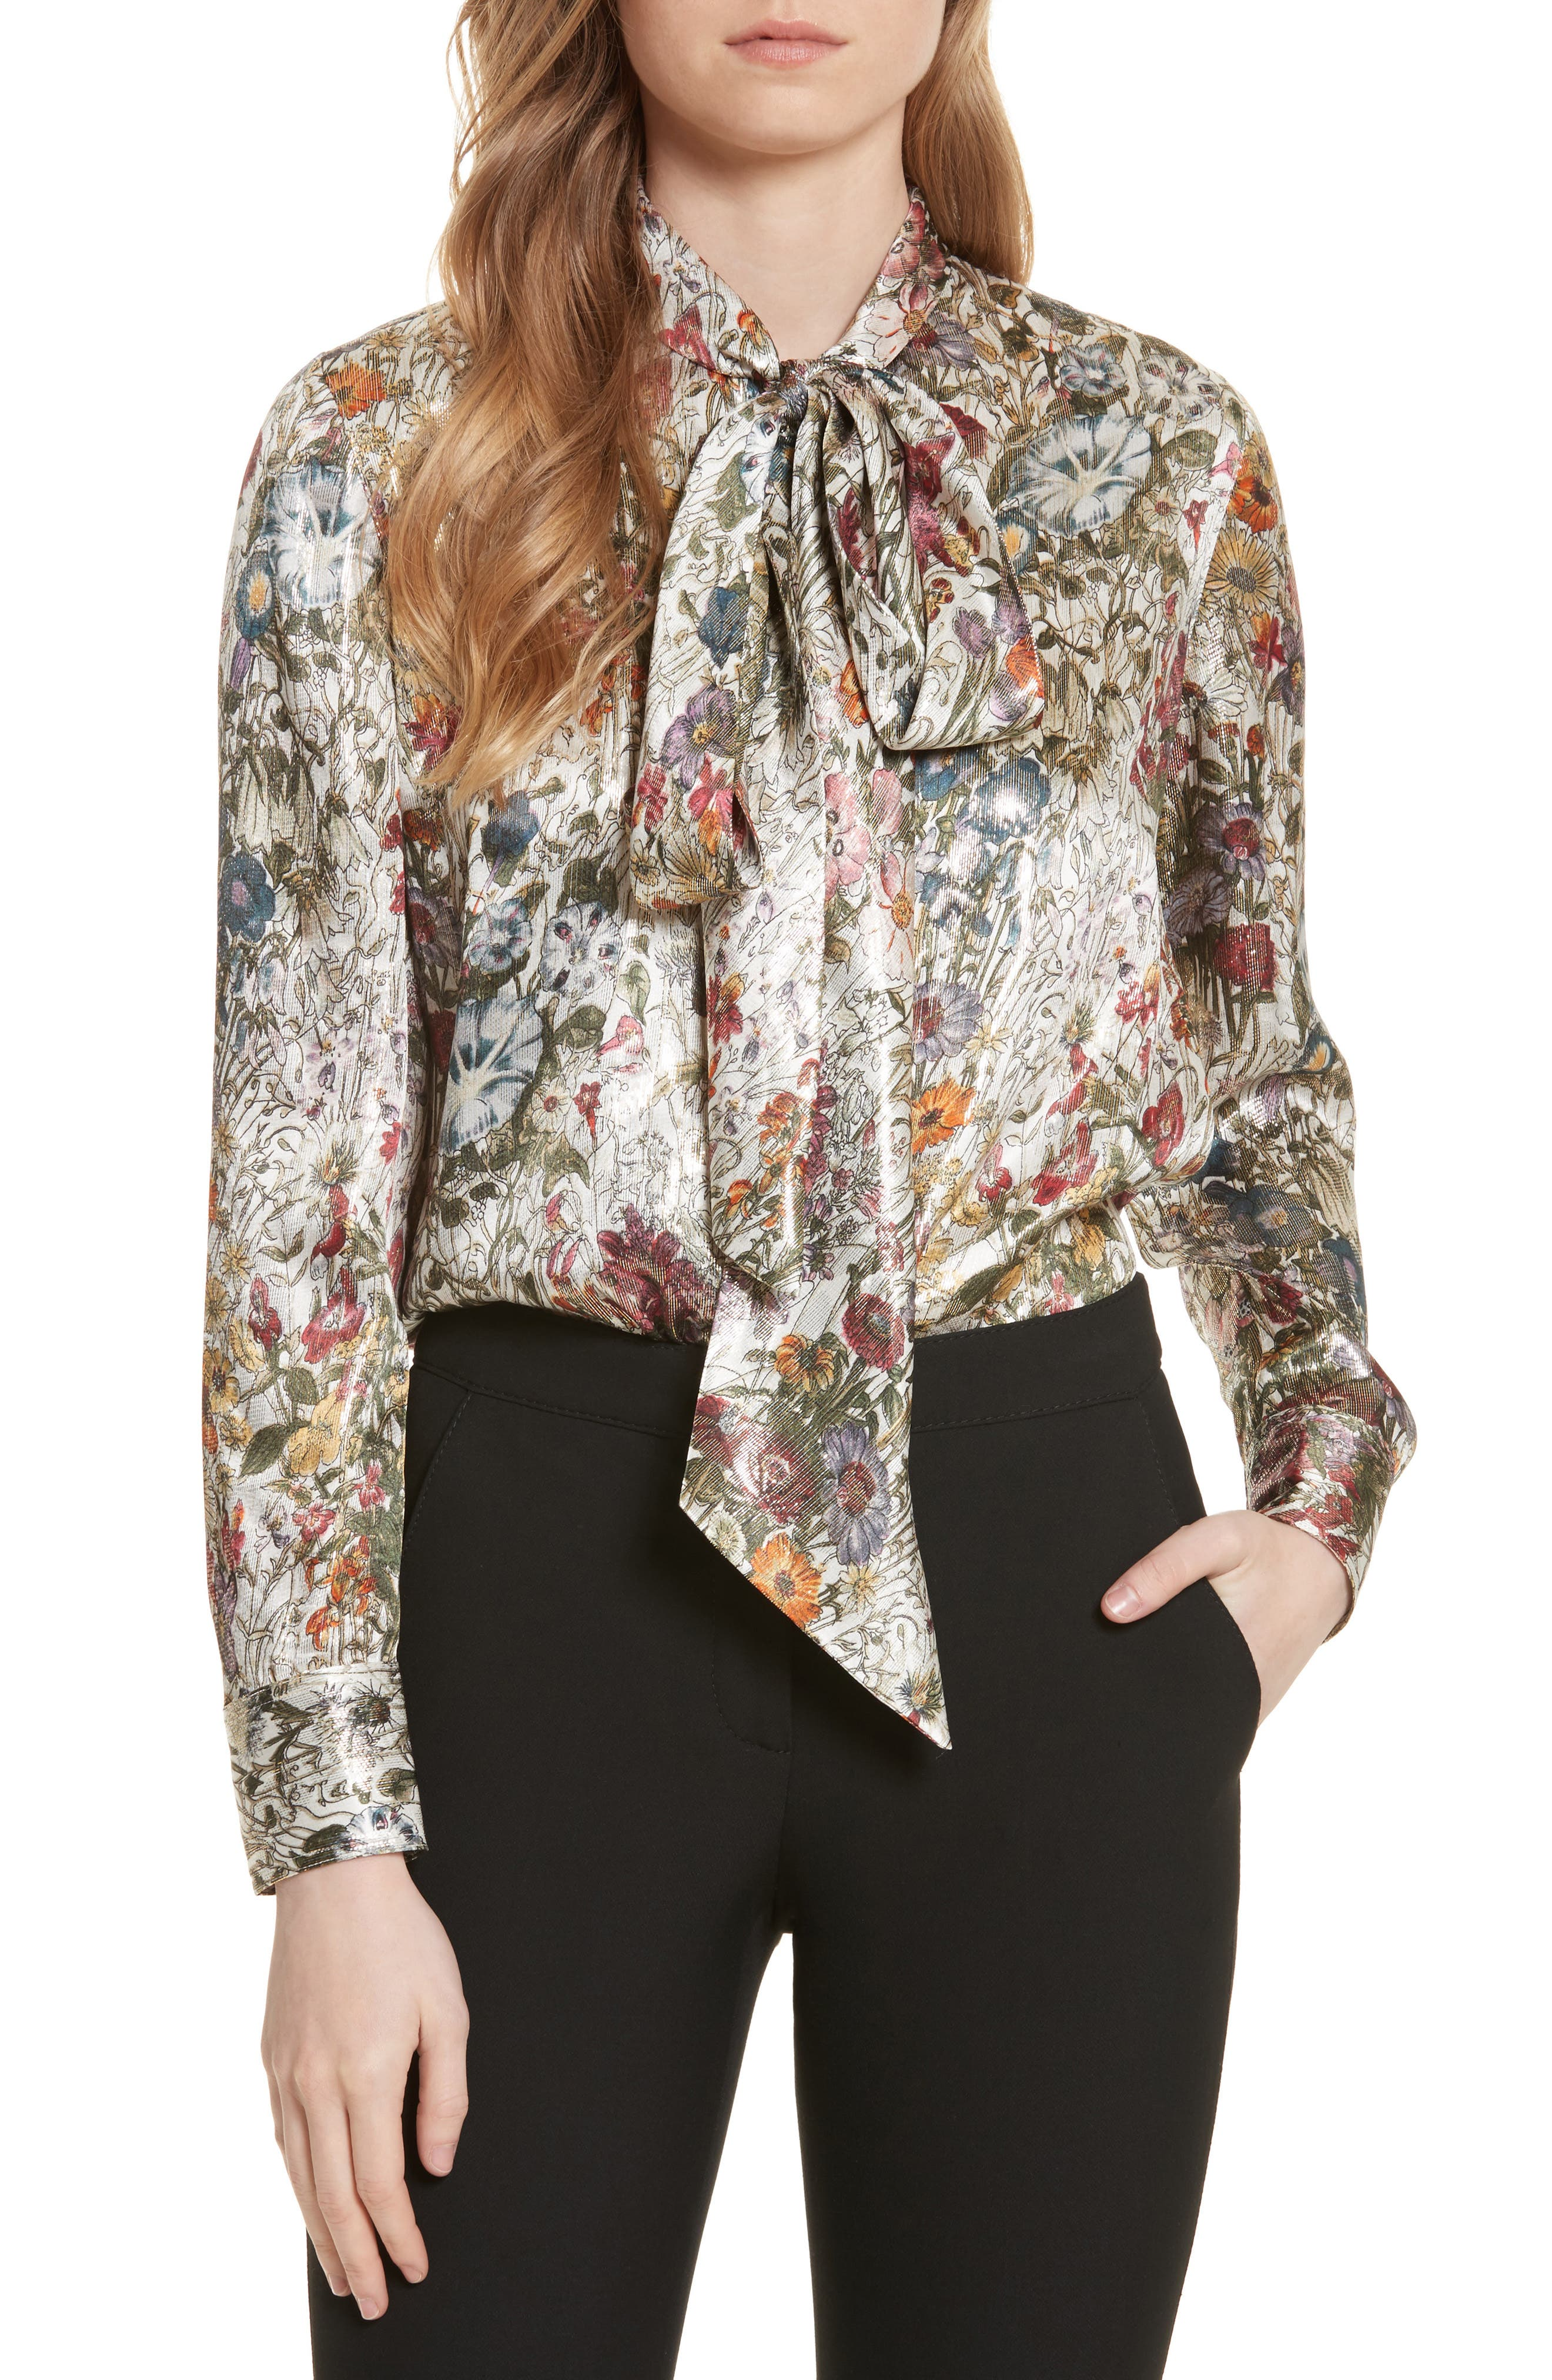 Tory Burch Tie Neck Metallic Floral Blouse